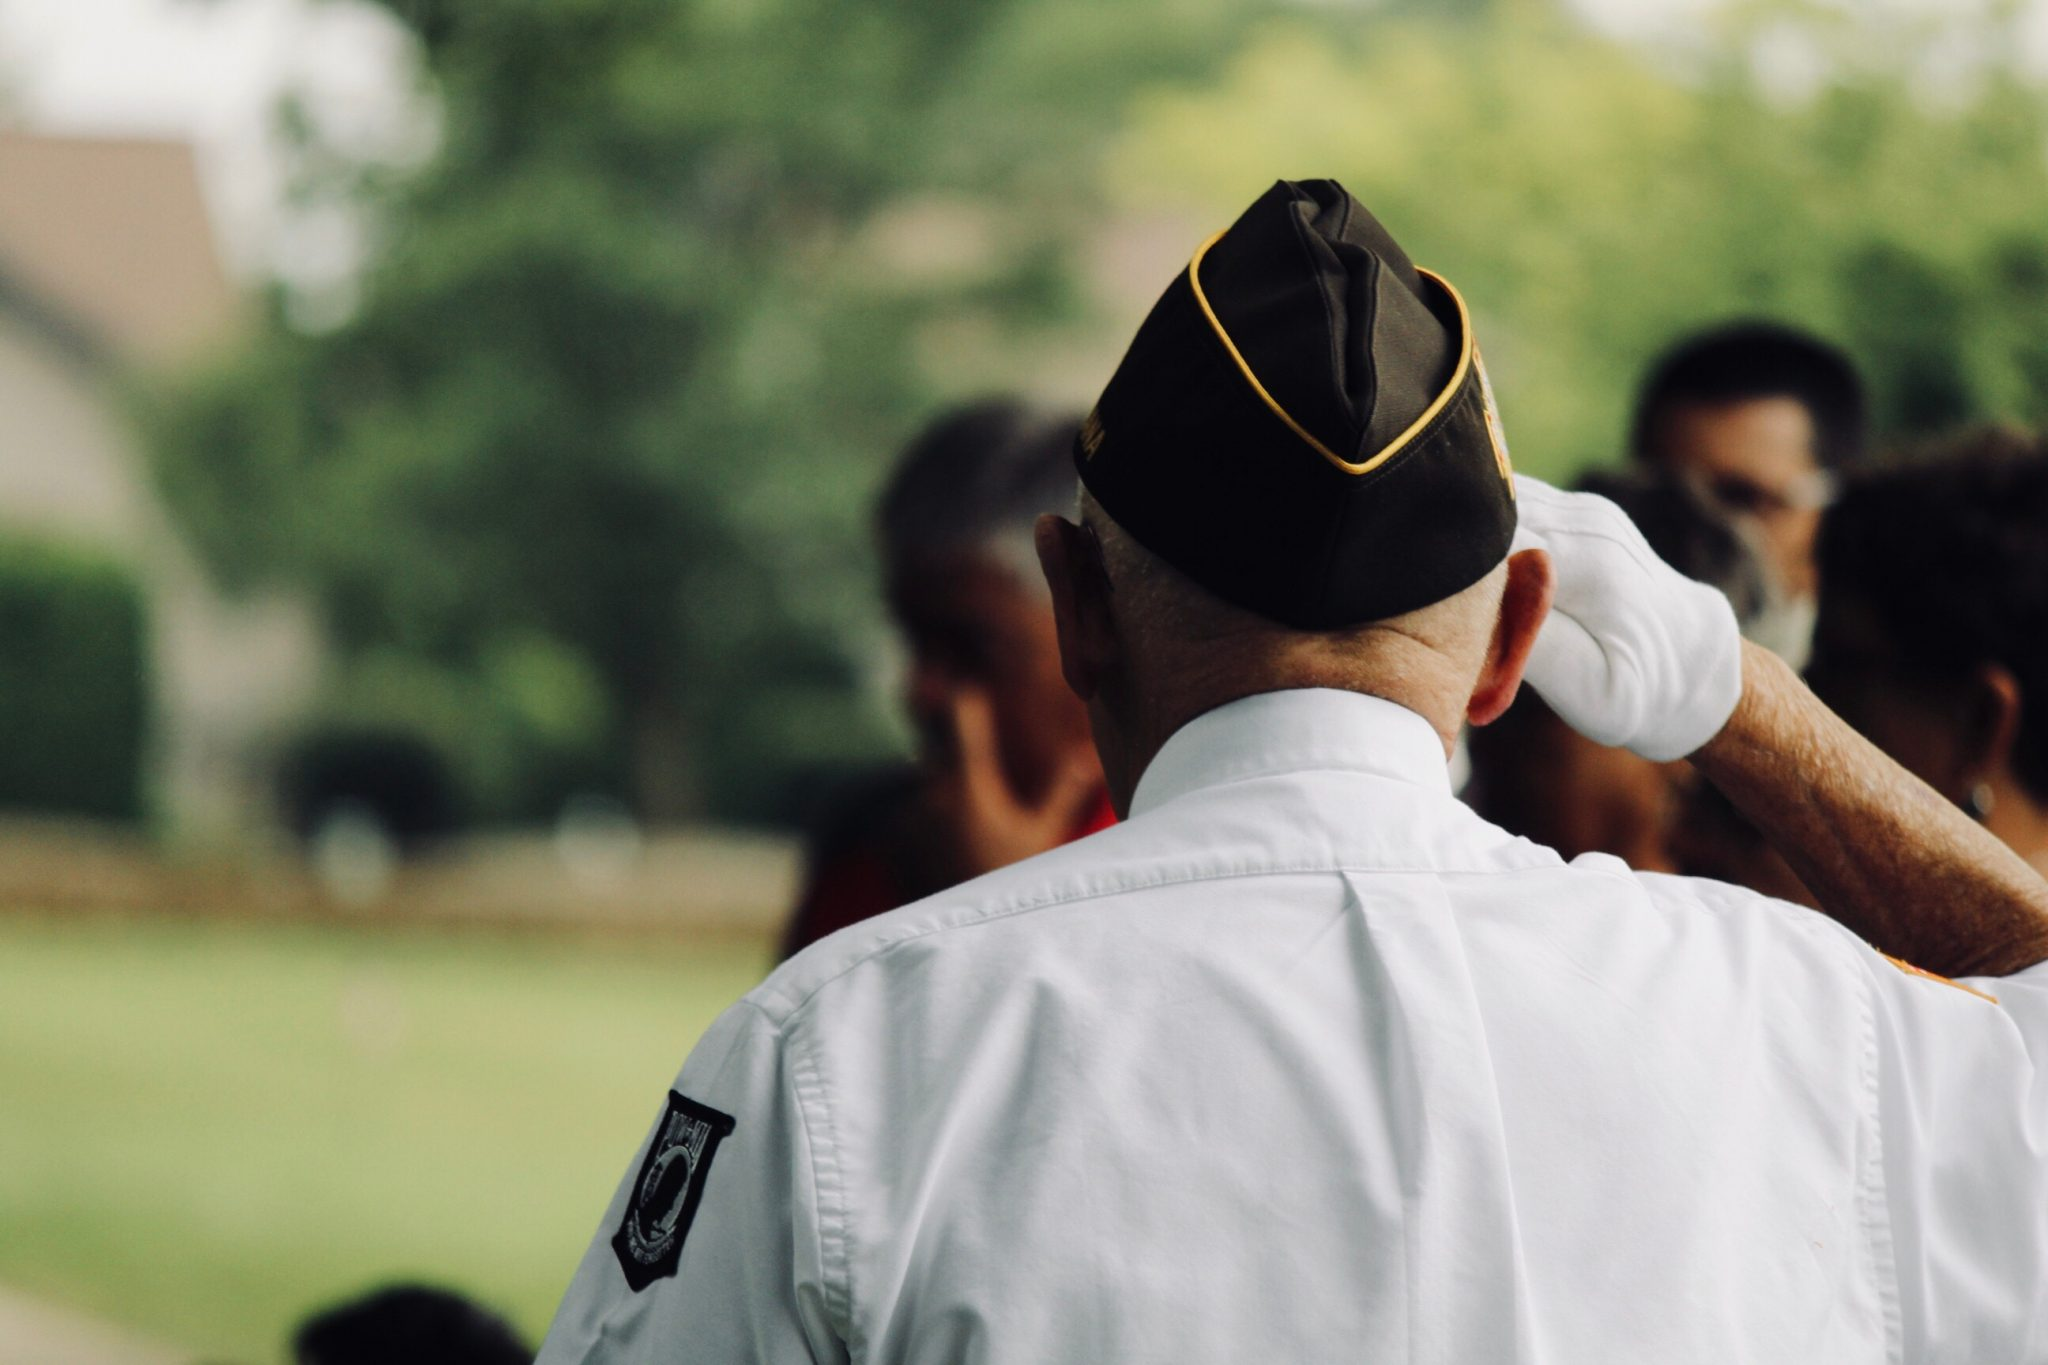 Affordable Memory Care Solutions For Veterans